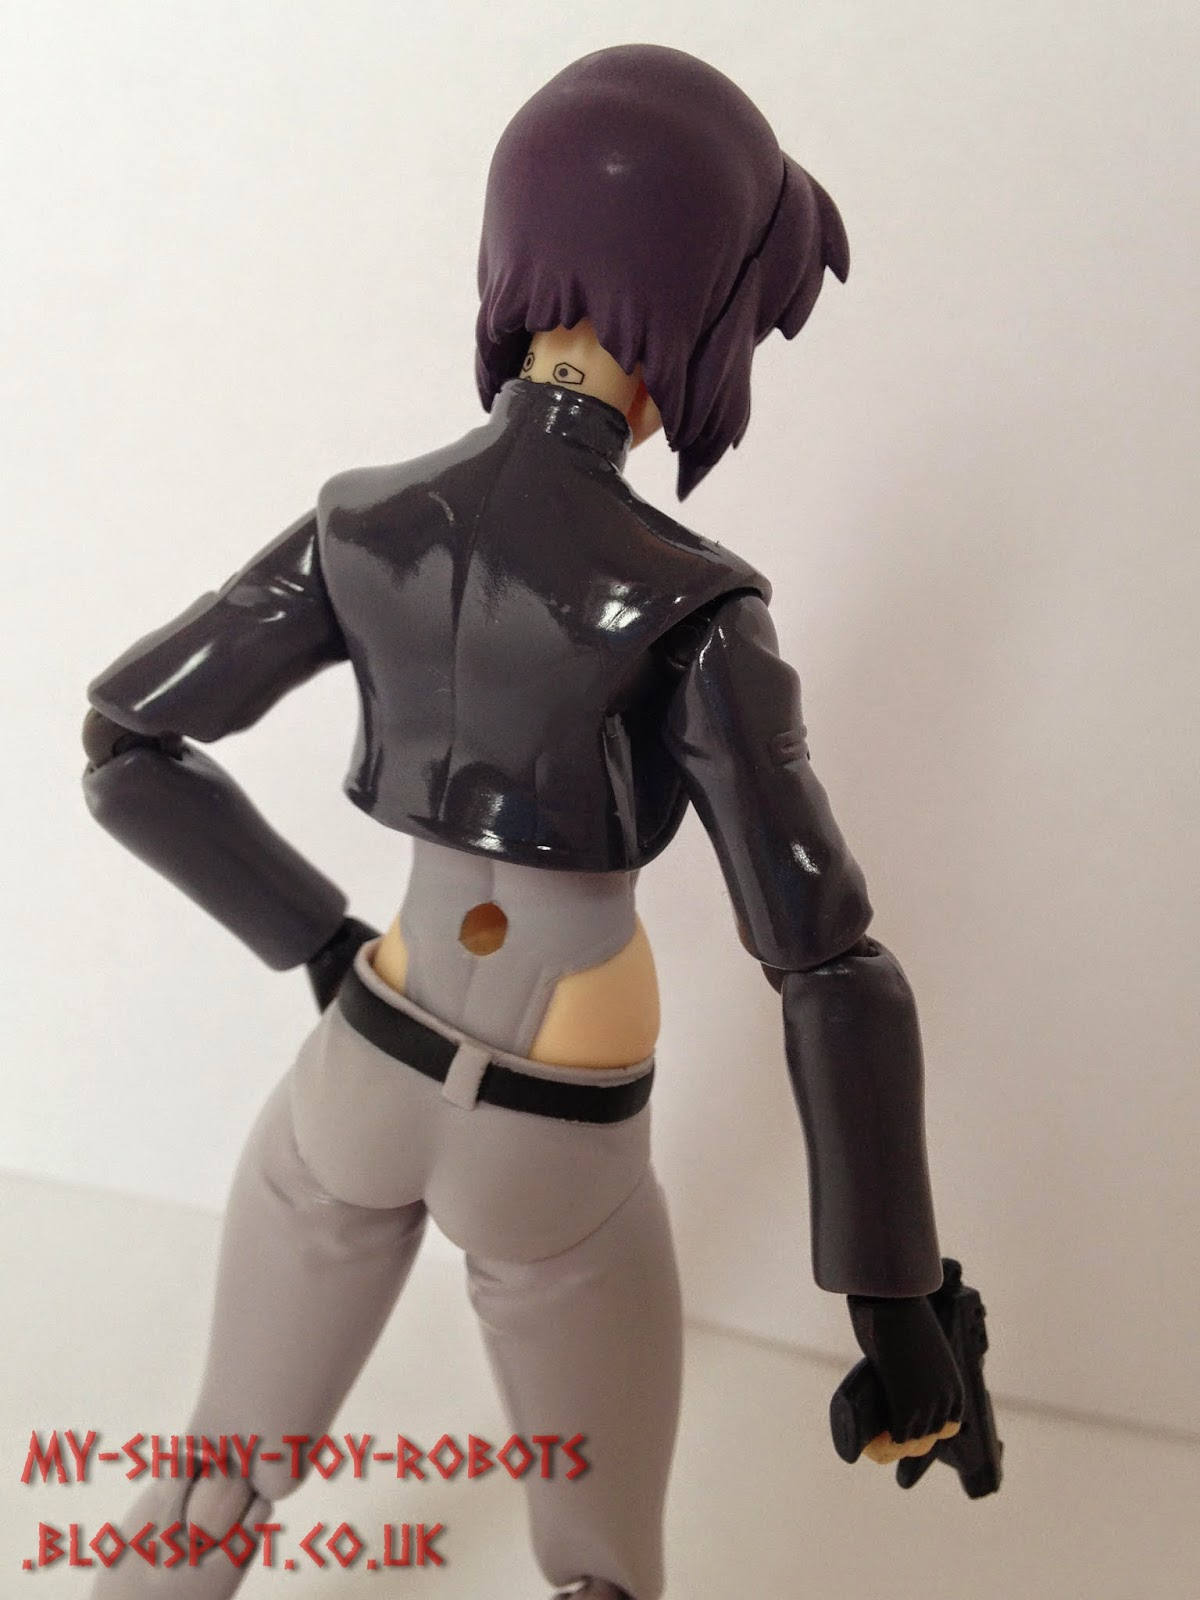 More Figma booty